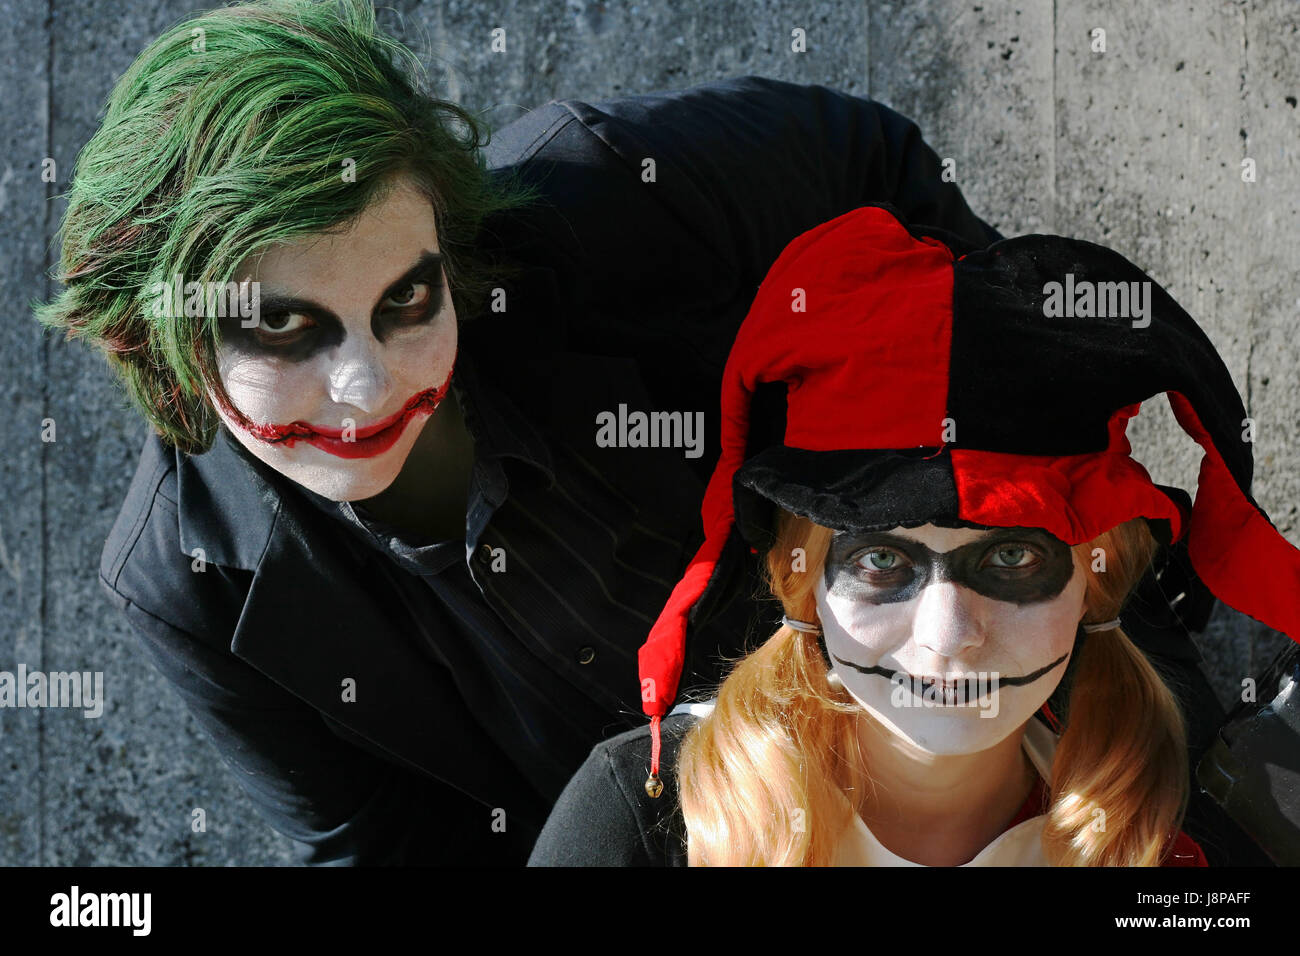 Joker Heath Ledger Stock Photos & Joker Heath Ledger Stock